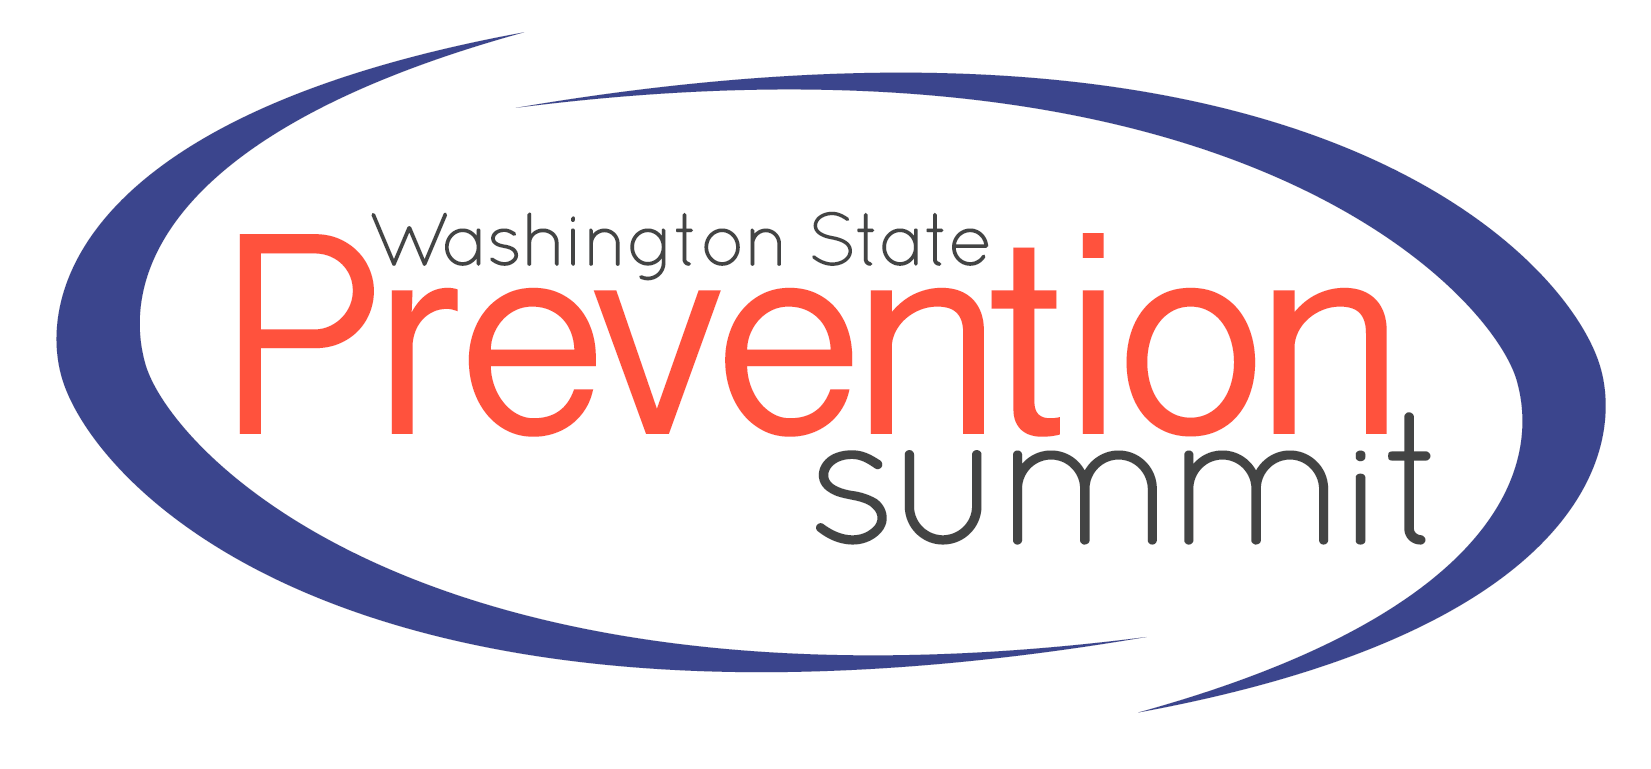 Conferences - The Washington State Prevention Summit provides an enriching and culturally competent training and networking opportunity for youth, volunteers and professionals across the state who are working toward the prevention of substance abuse, violence and other destructive behaviors as well as integrating such prevention efforts with primary health care.